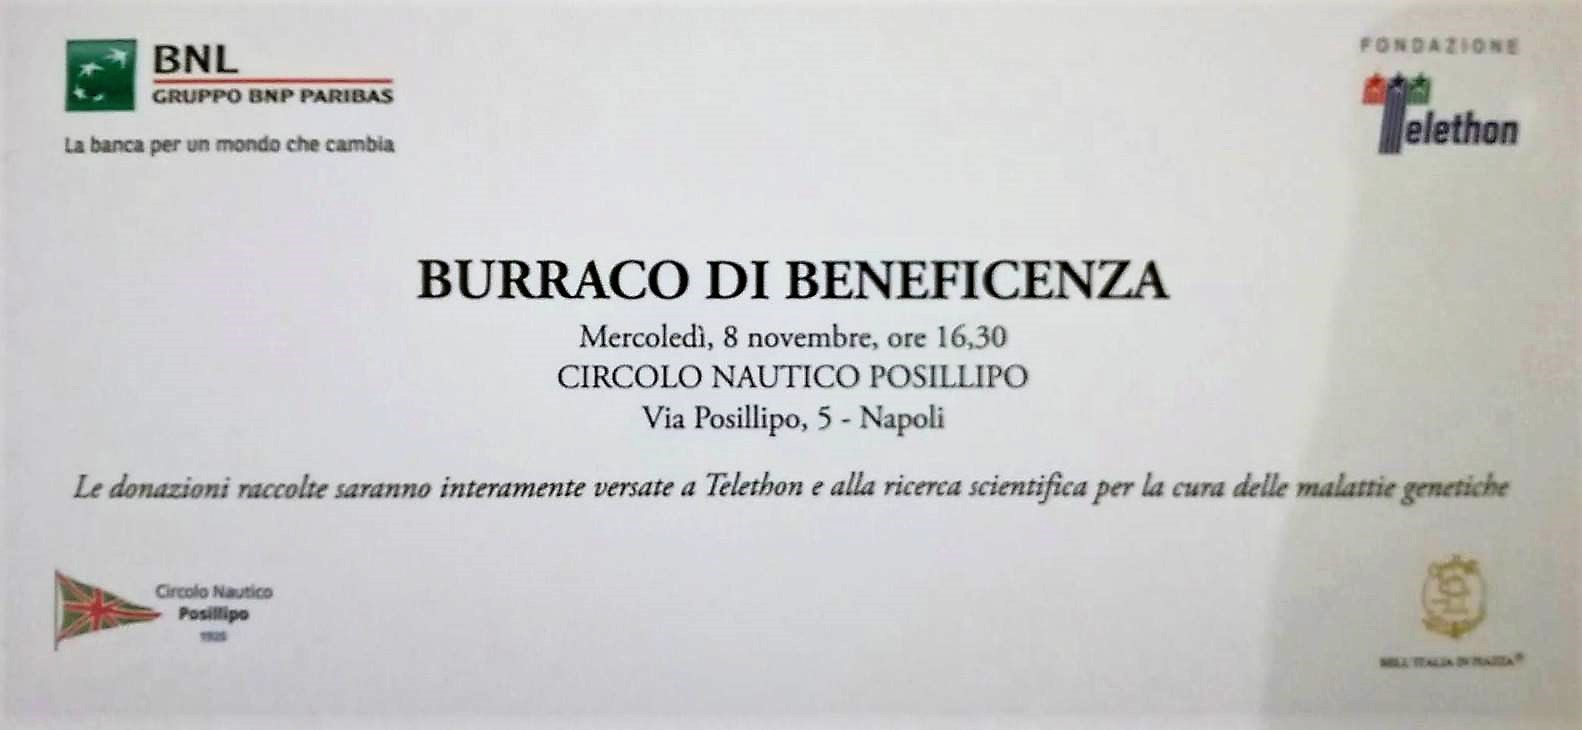 burraco beneficenza